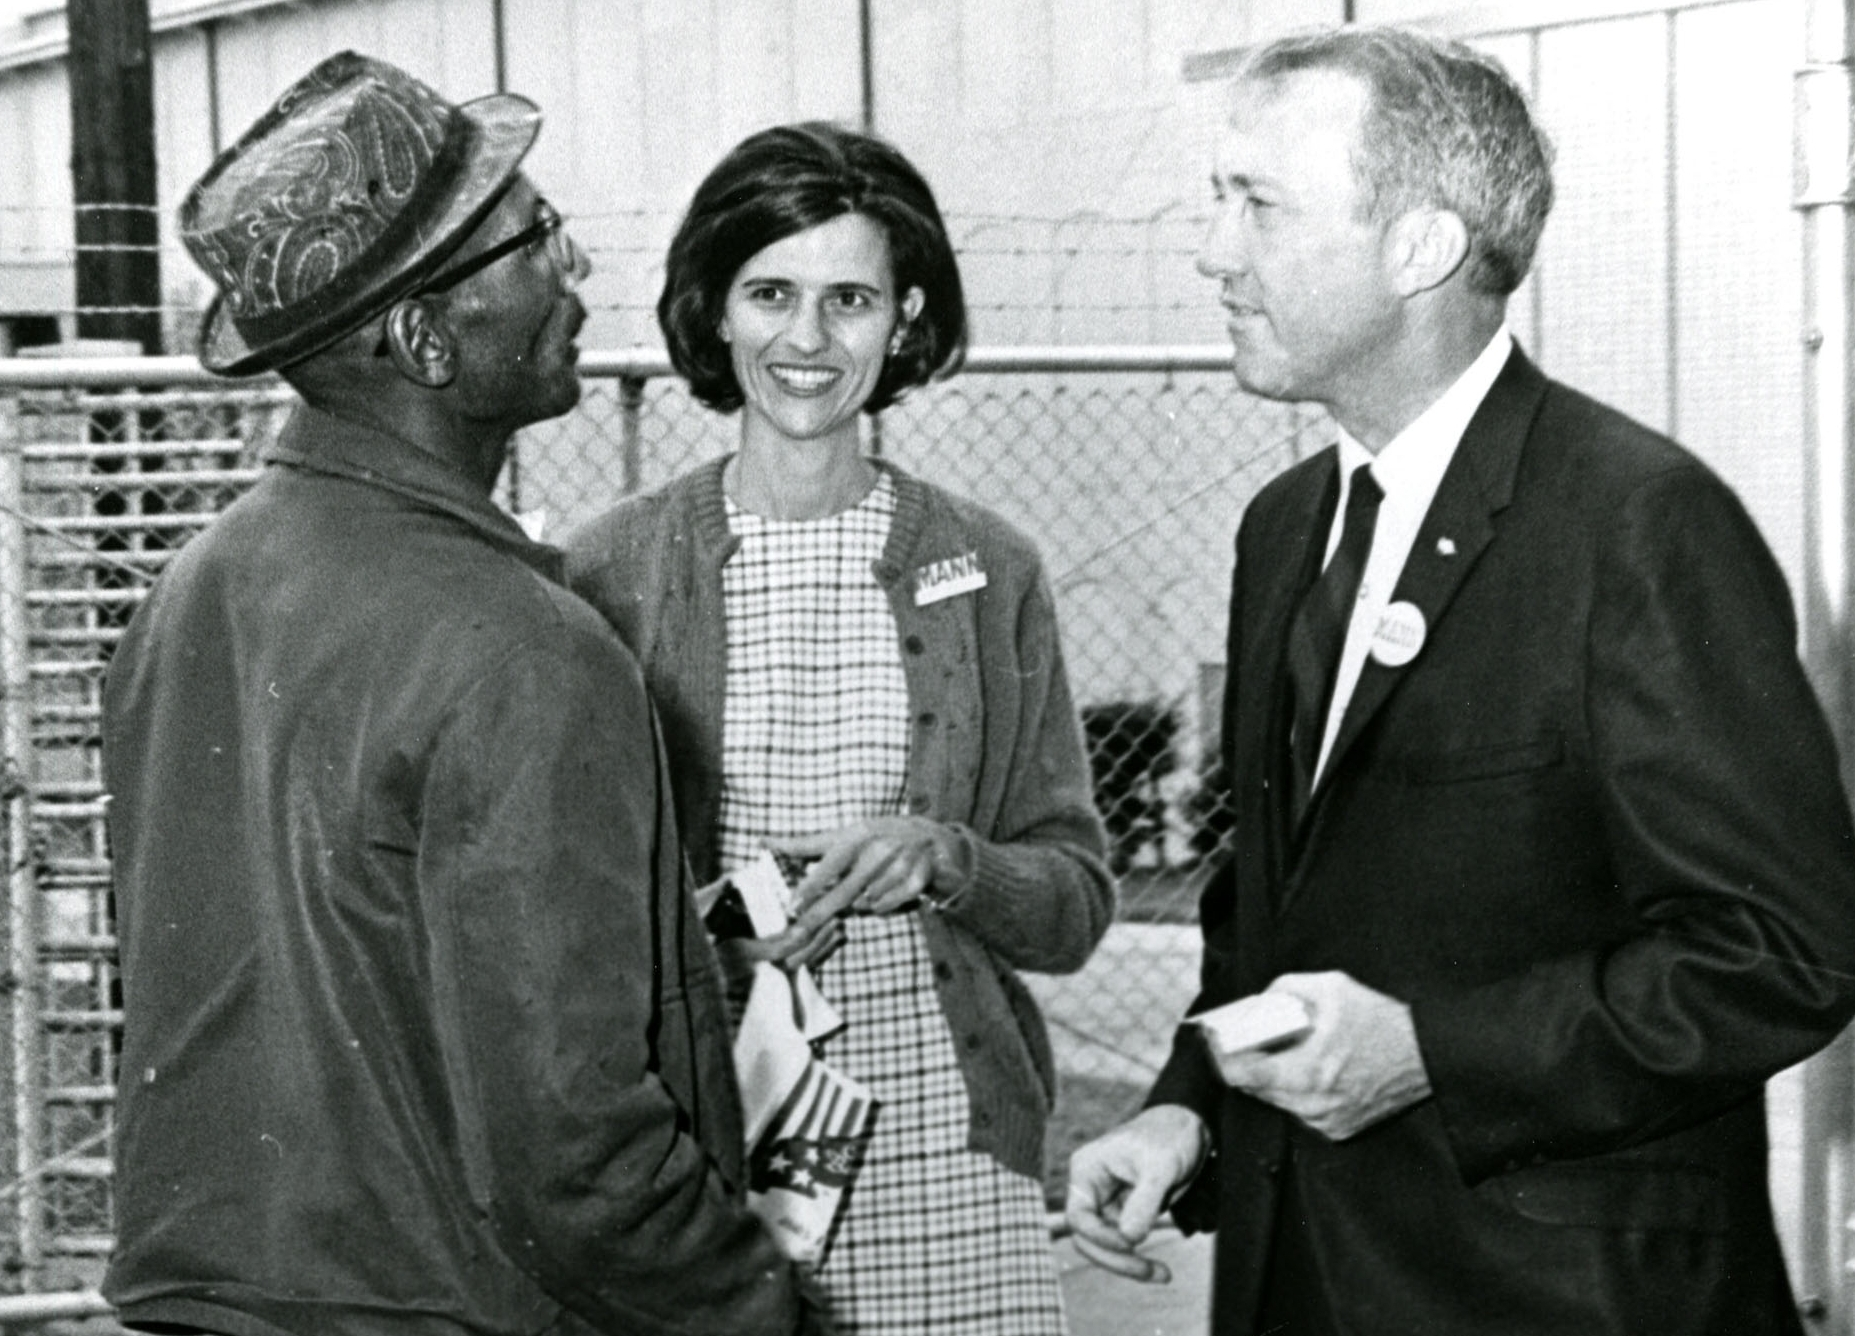 Liz Patterson with congressman mann early in her political career